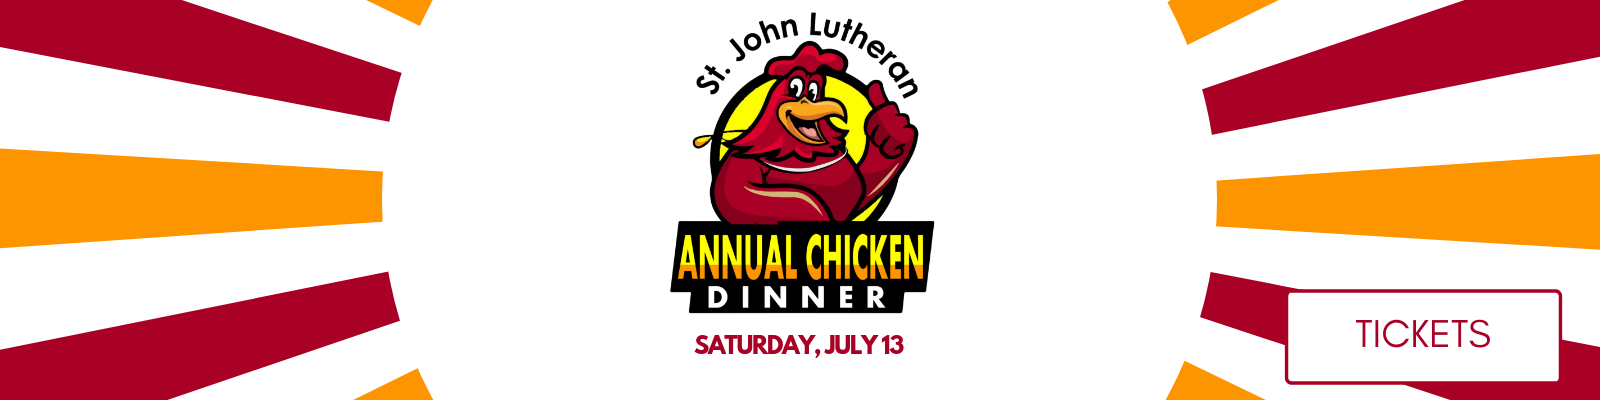 Join us on Saturday, July 13 for our 3rd annual Chicken Dinner at St  John Lutheran Church in Ely